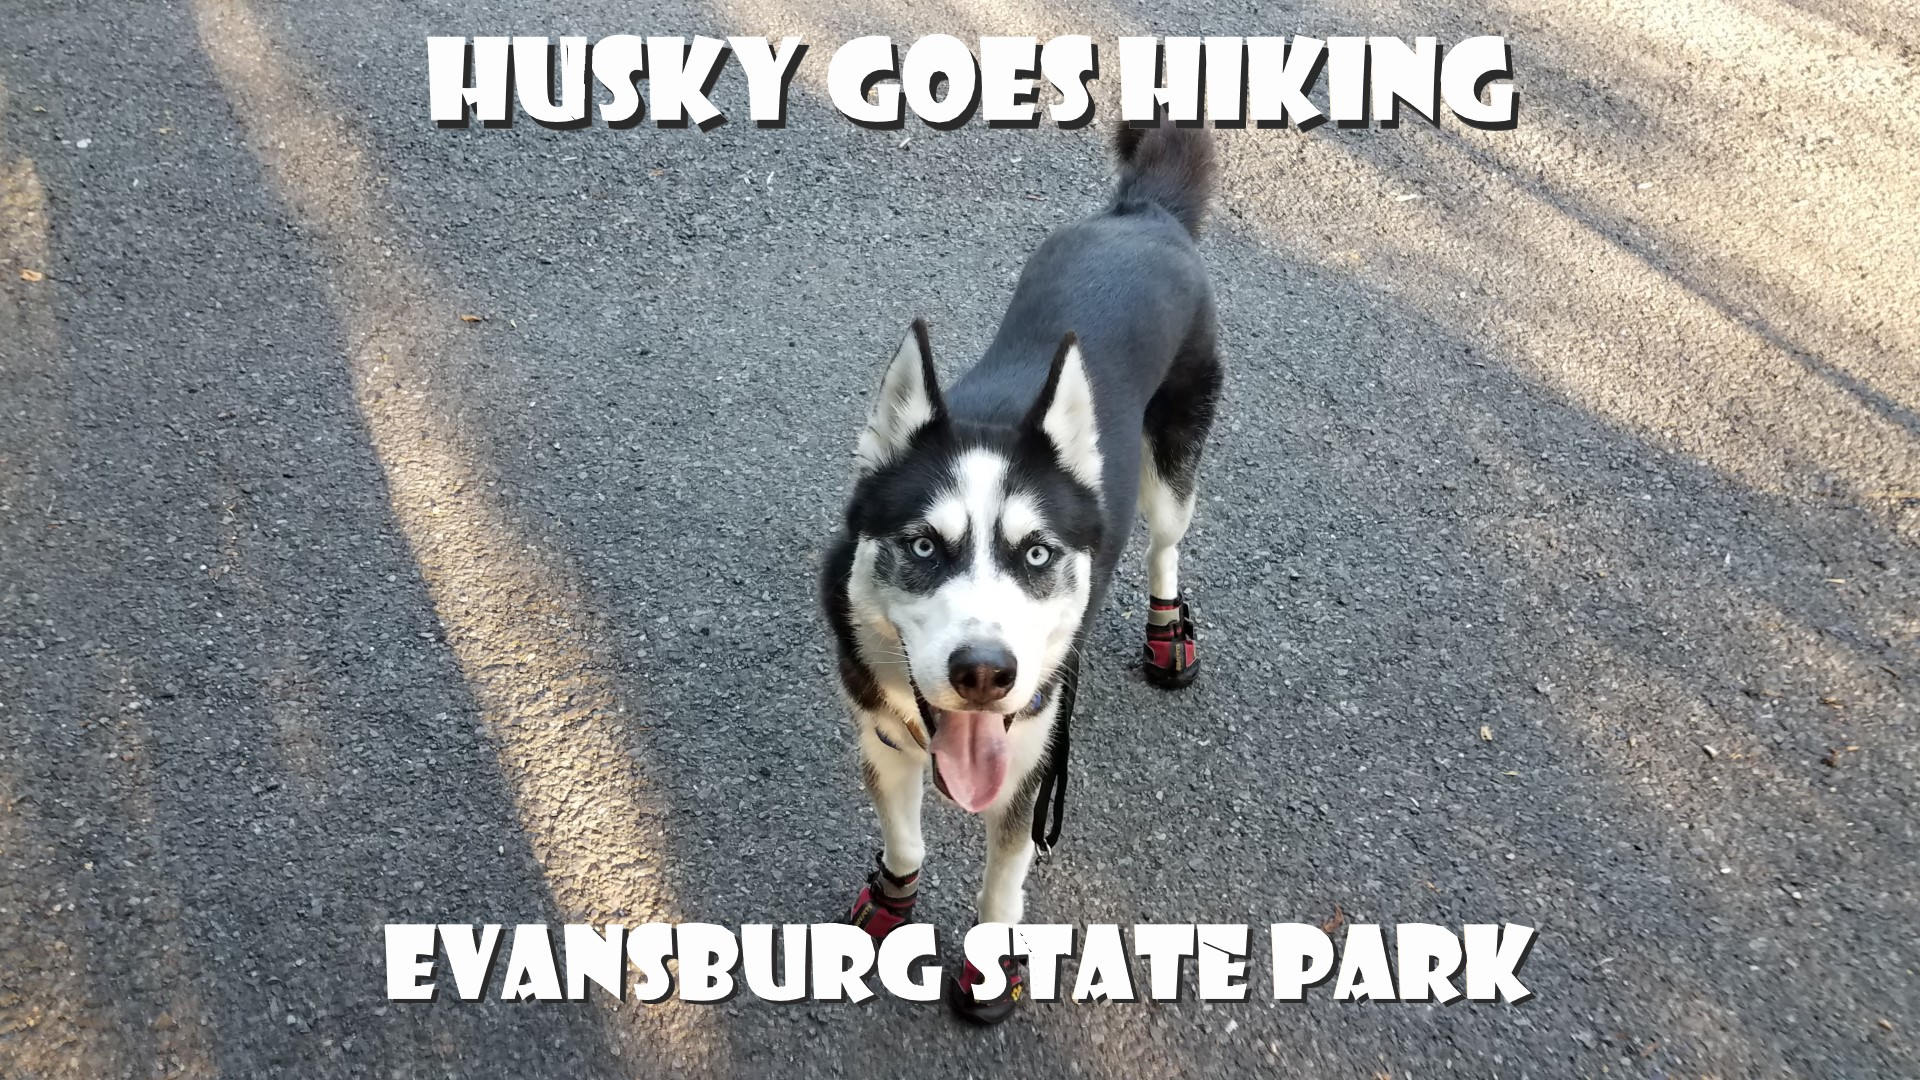 Evansburg State Park Video